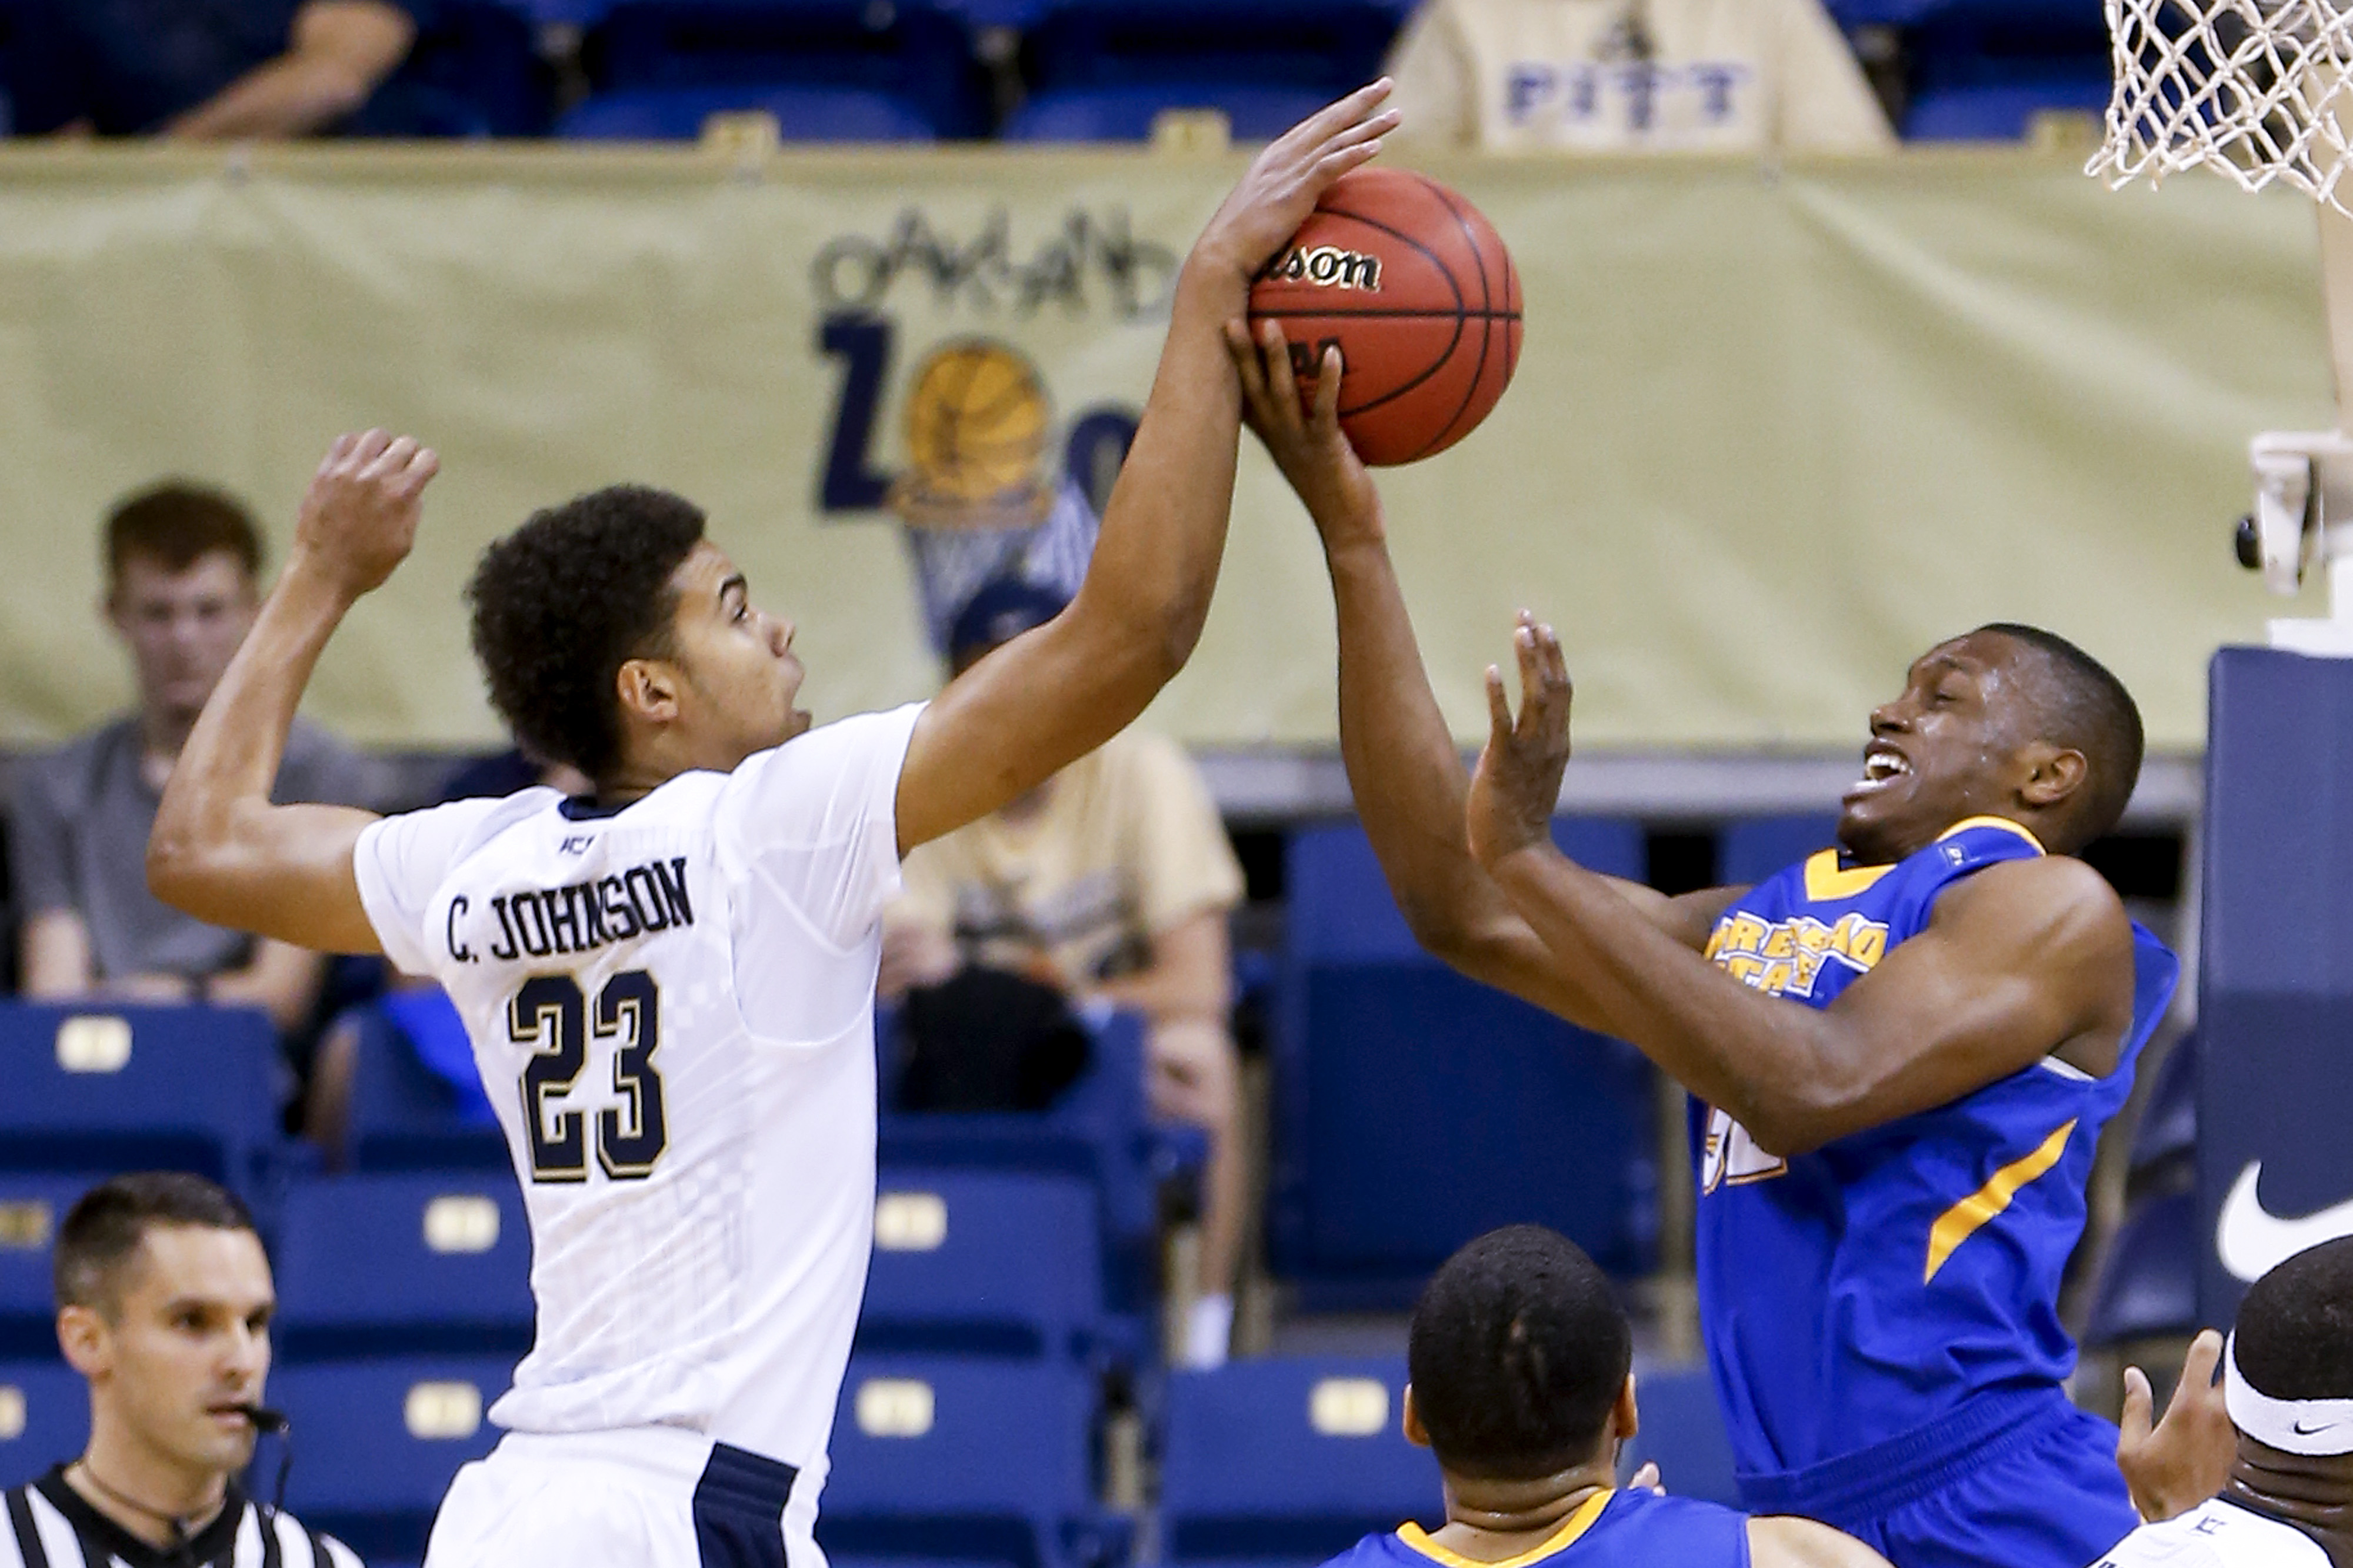 Pittsburgh's Cameron Johnson (23) blocks a shot by Morehead State's Brent Arrington in the first half of an NCAA college basketball game, Sunday, Dec. 13, 2015, in Pittsburgh. (AP Photo/Keith Srakocic)